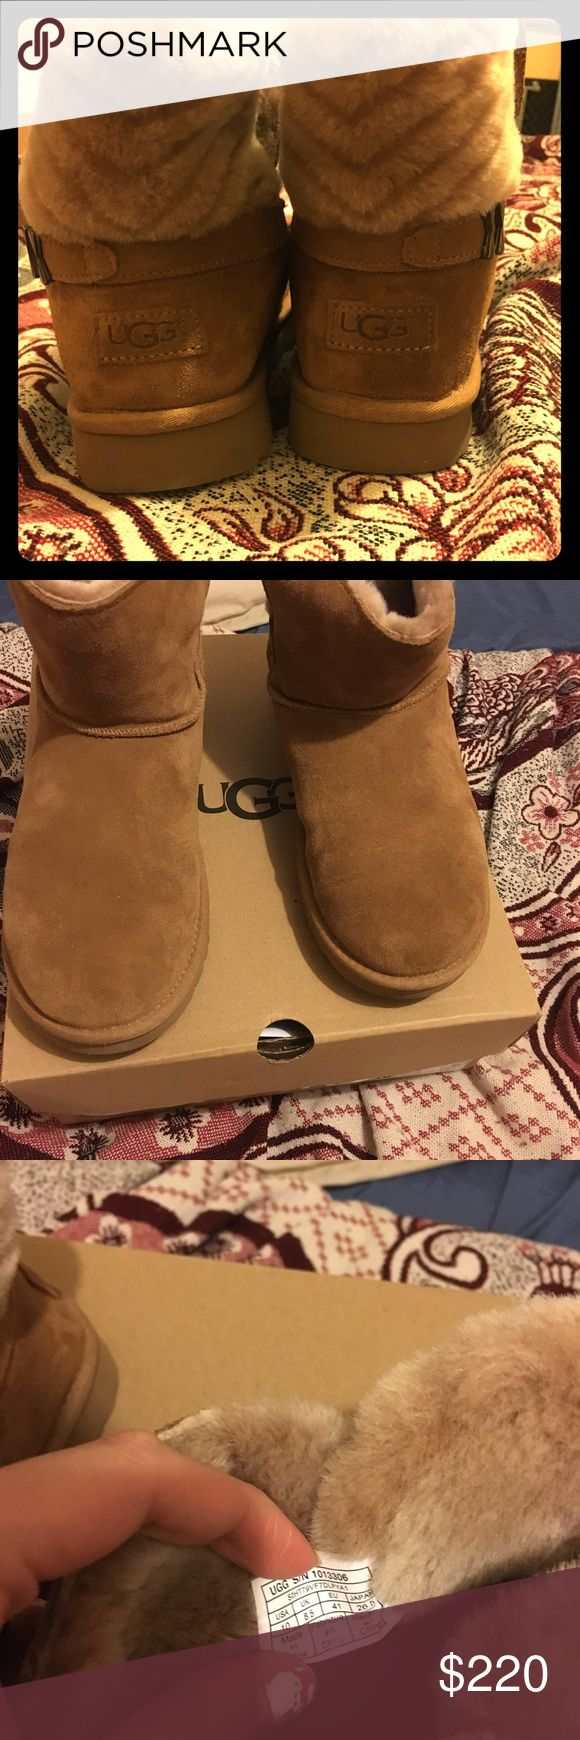 Original UGG boots Boots are in good conditions I just worn it 2 times I brought them 2 weeks ago from the store.. size 10. I have the original box and bag UGG Shoes Winter & Rain Boots